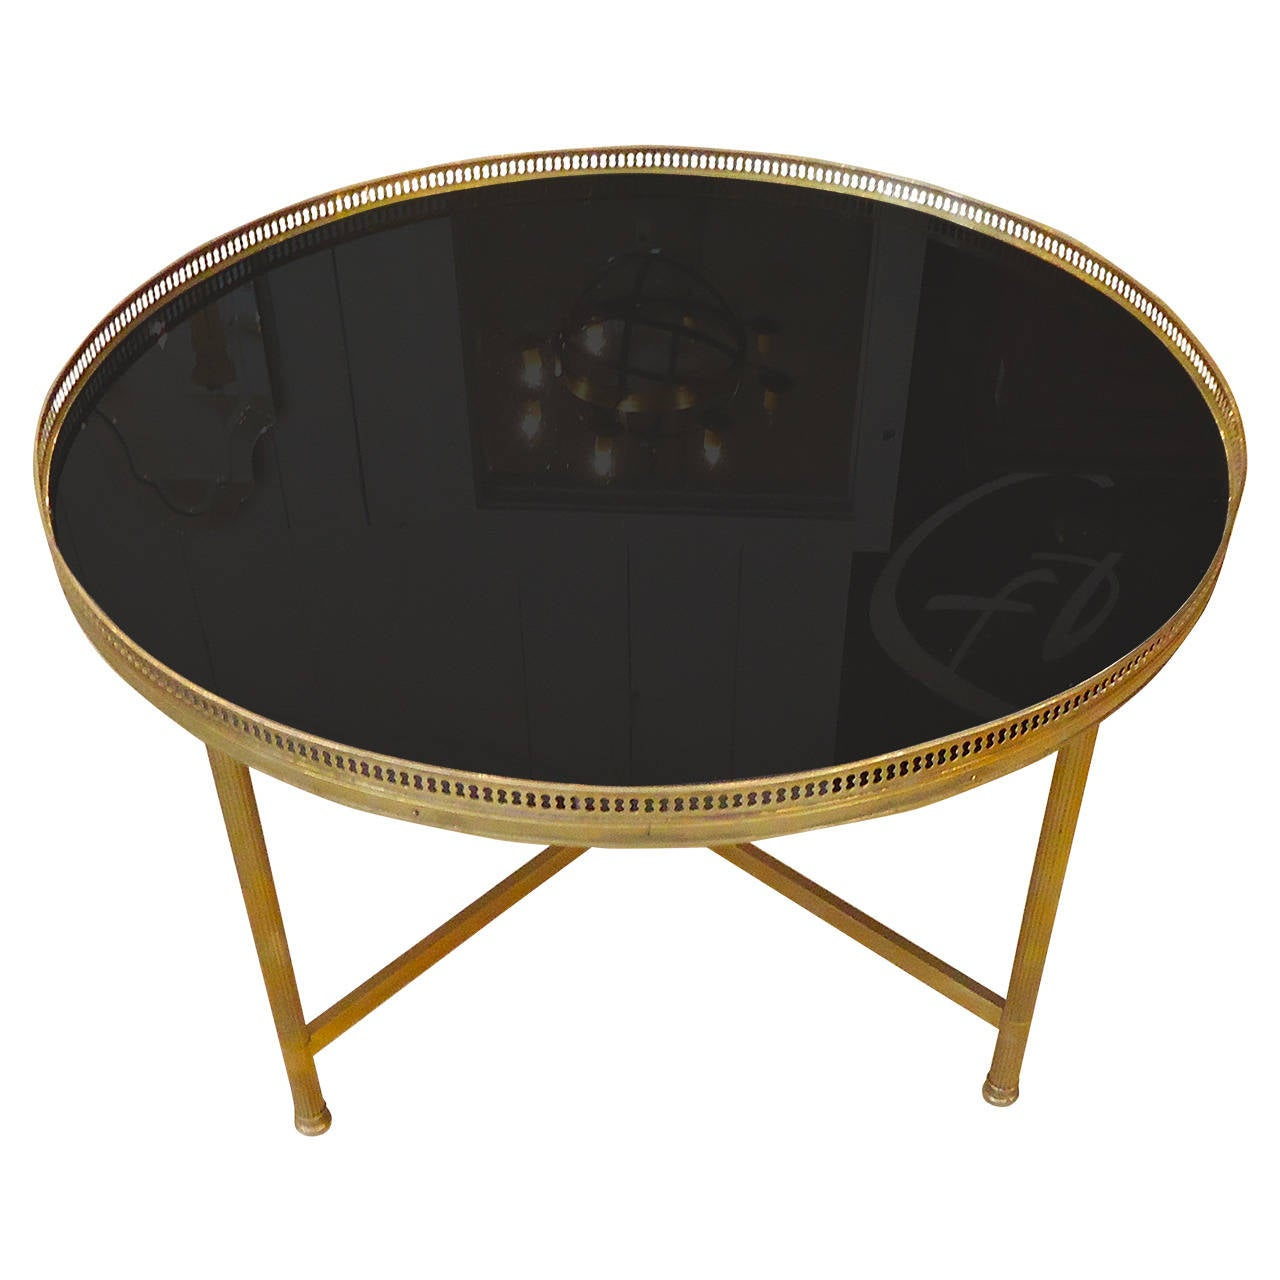 Maison jansen style bronze and black glass coffee table for Black glass coffee table